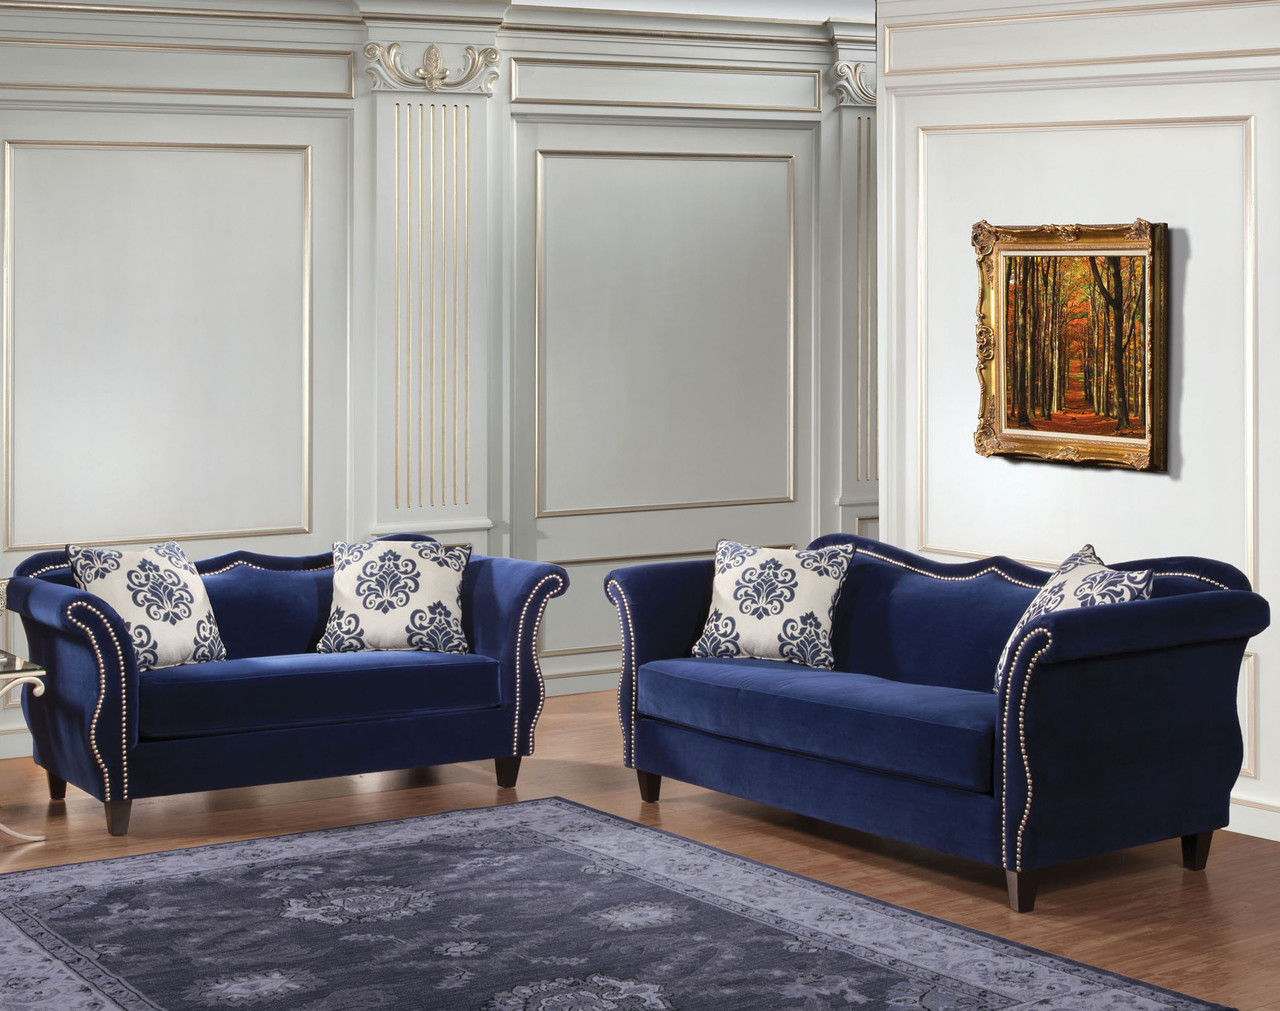 Maravilla royal blue livingroom cb furniture